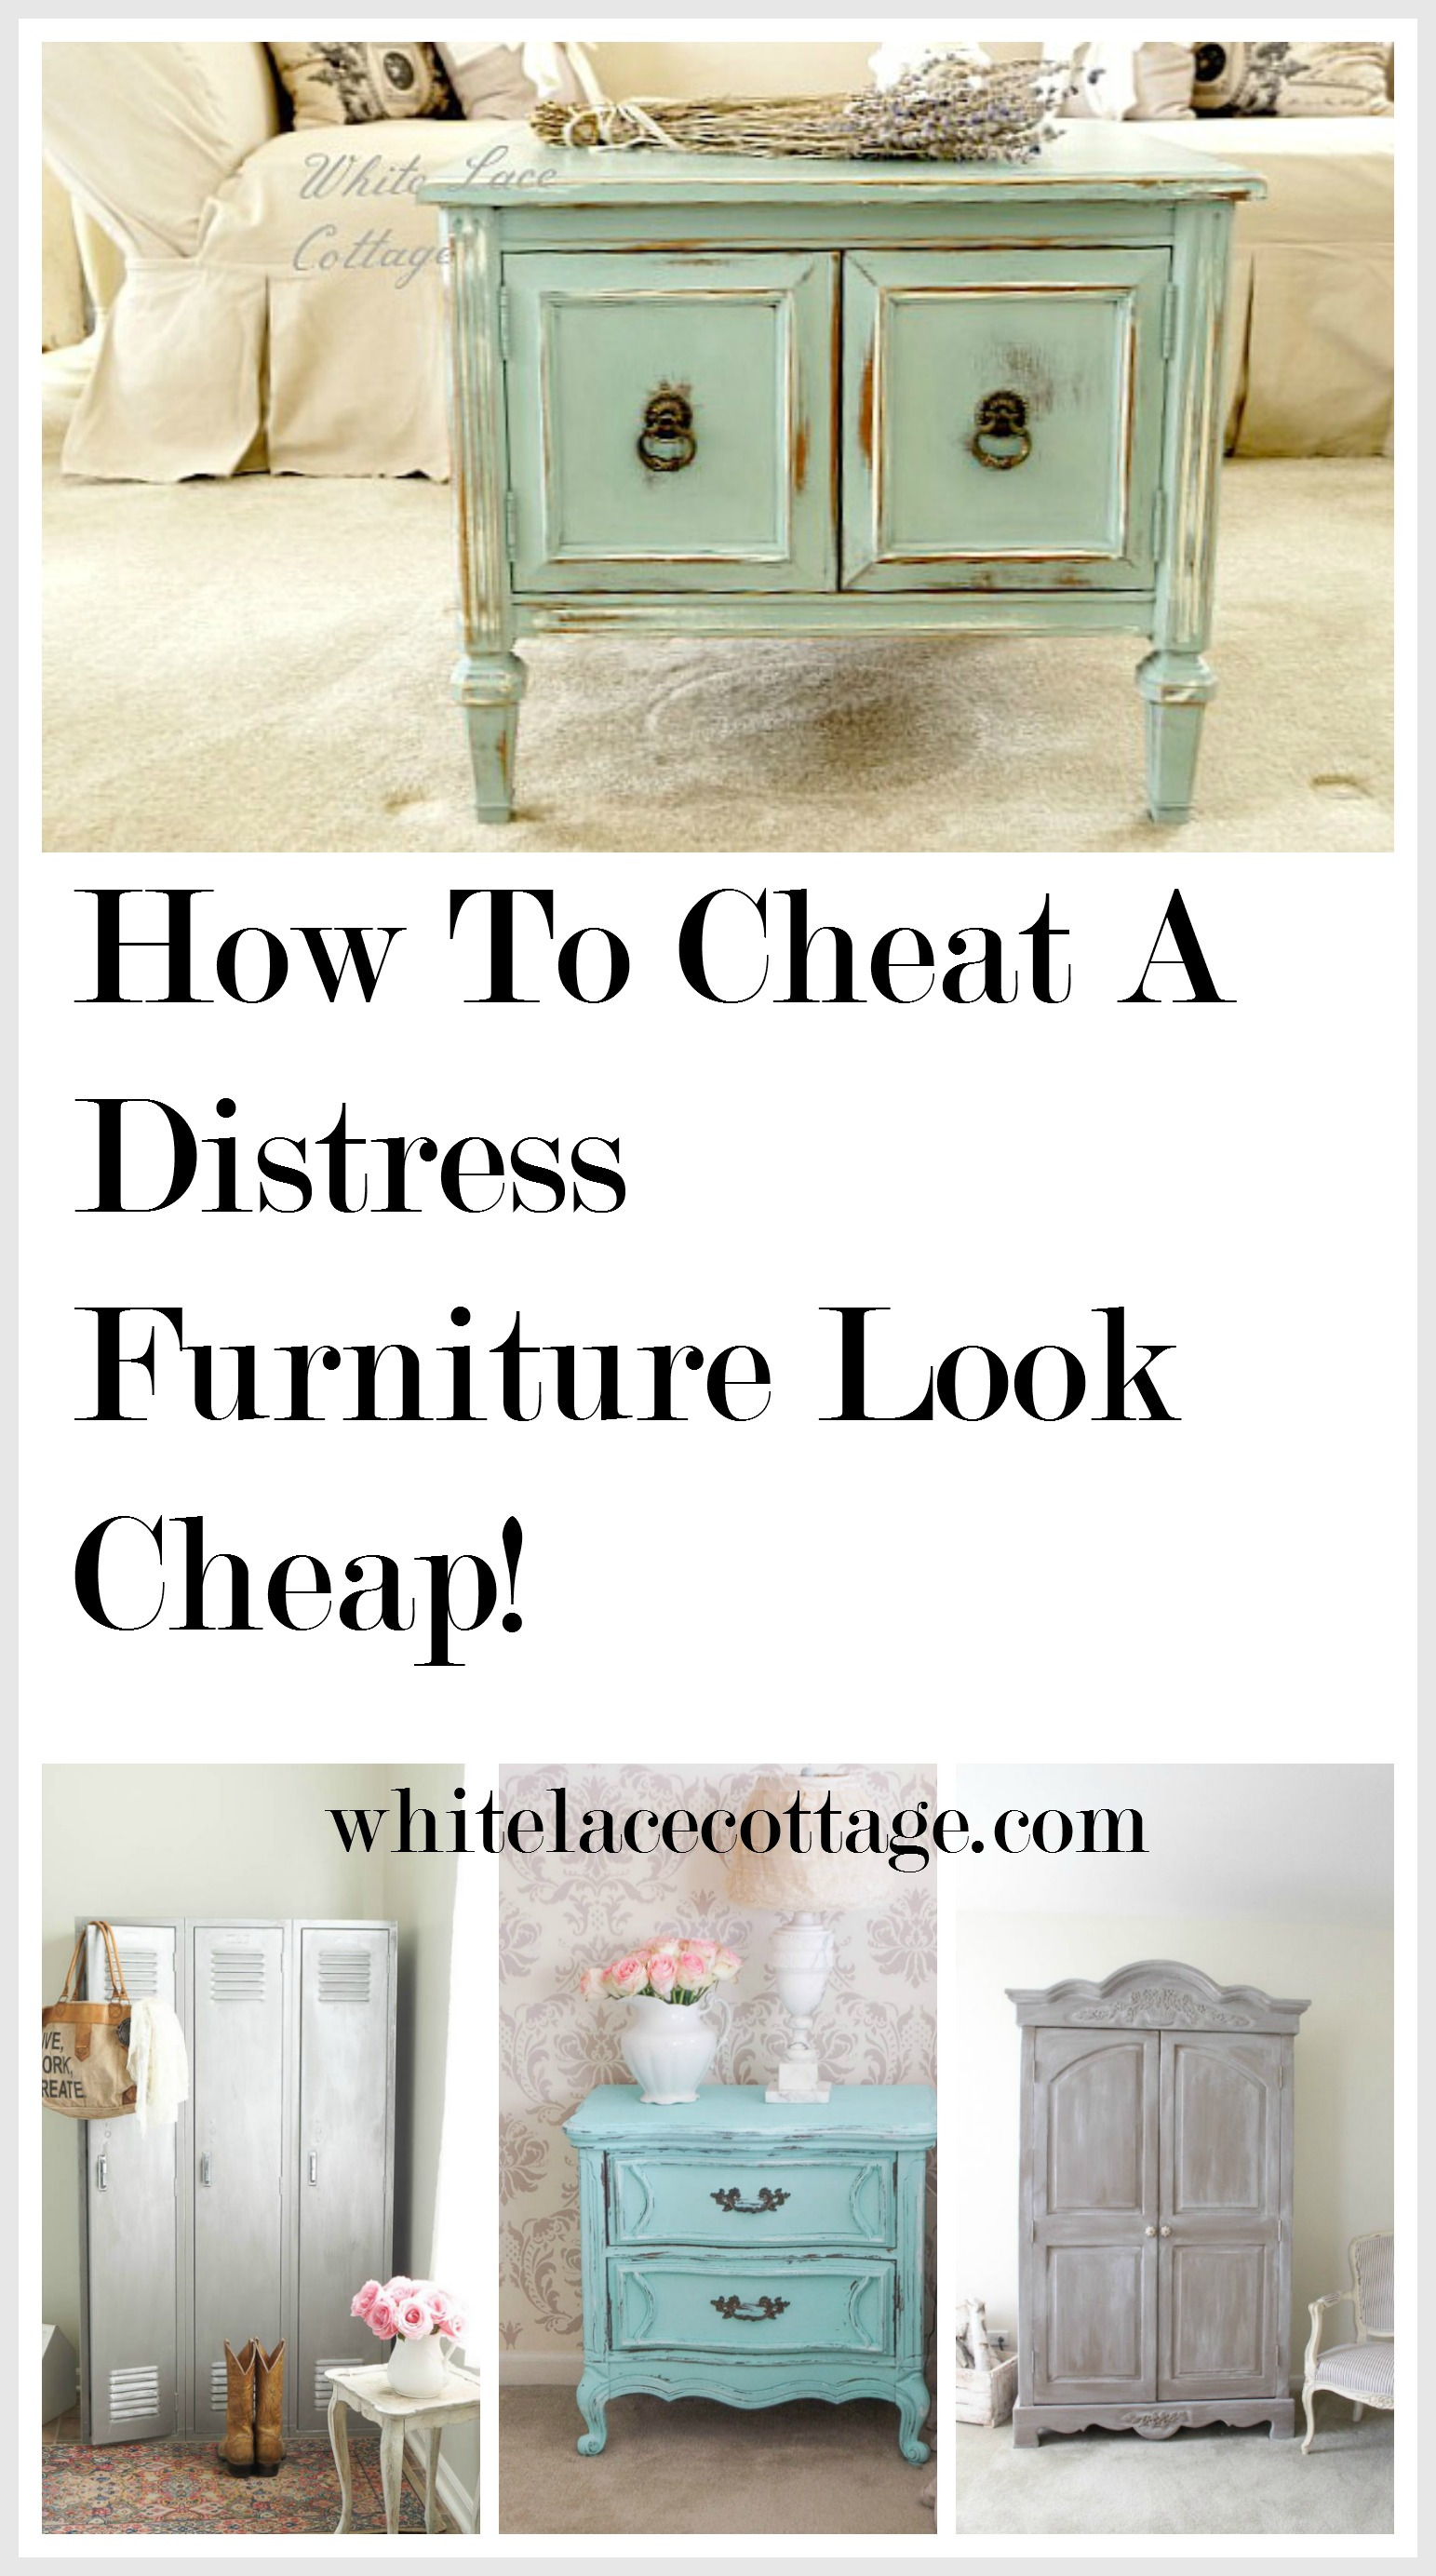 Antique Furniture Refinishing Techniques Lovely How to Cheat A Distress Furniture Look Cheap Anne P